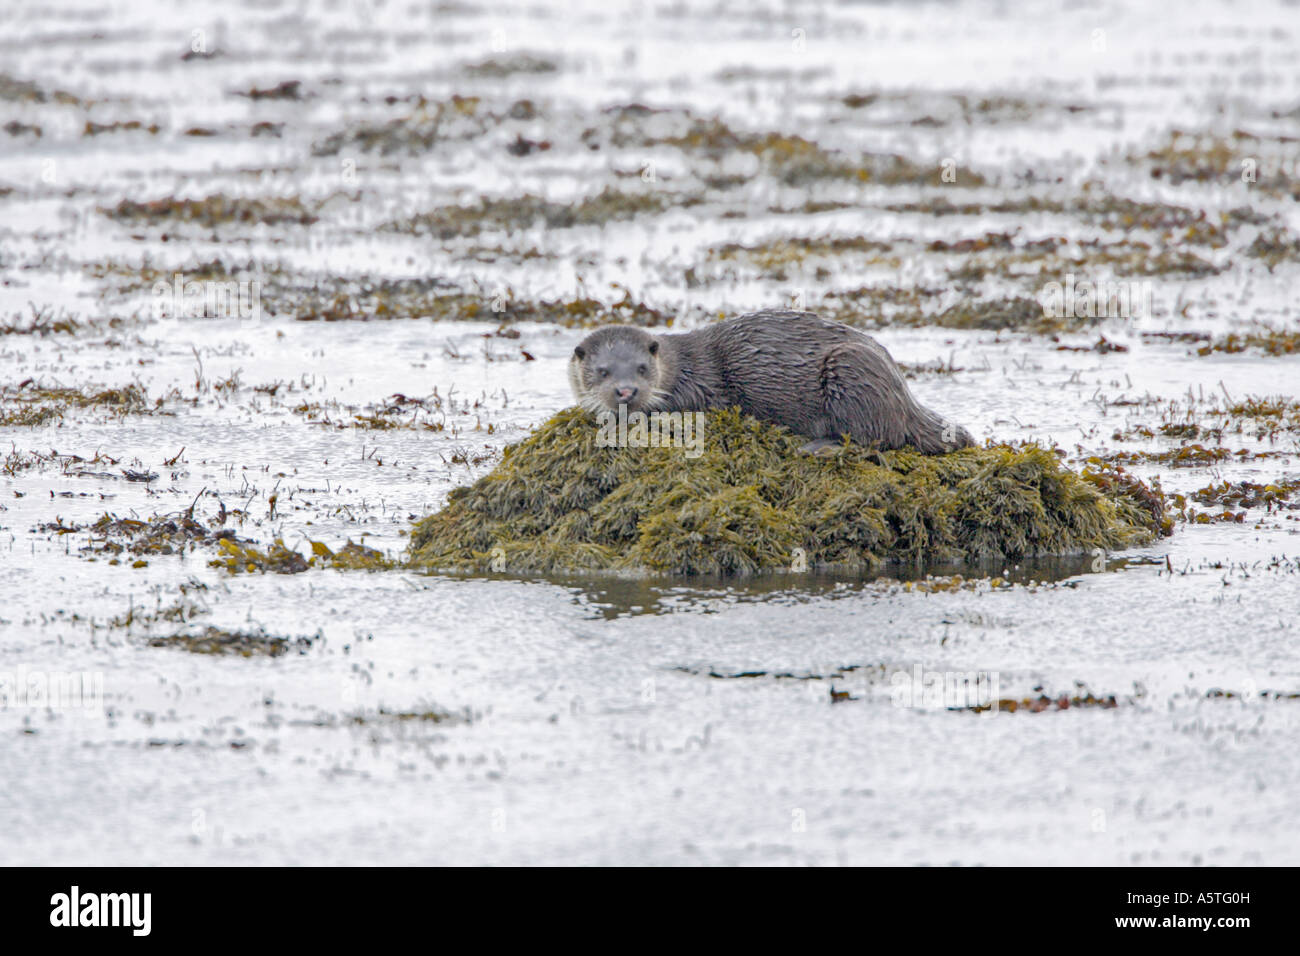 Otter on the shoreline in the Outer Hebrides - Stock Image